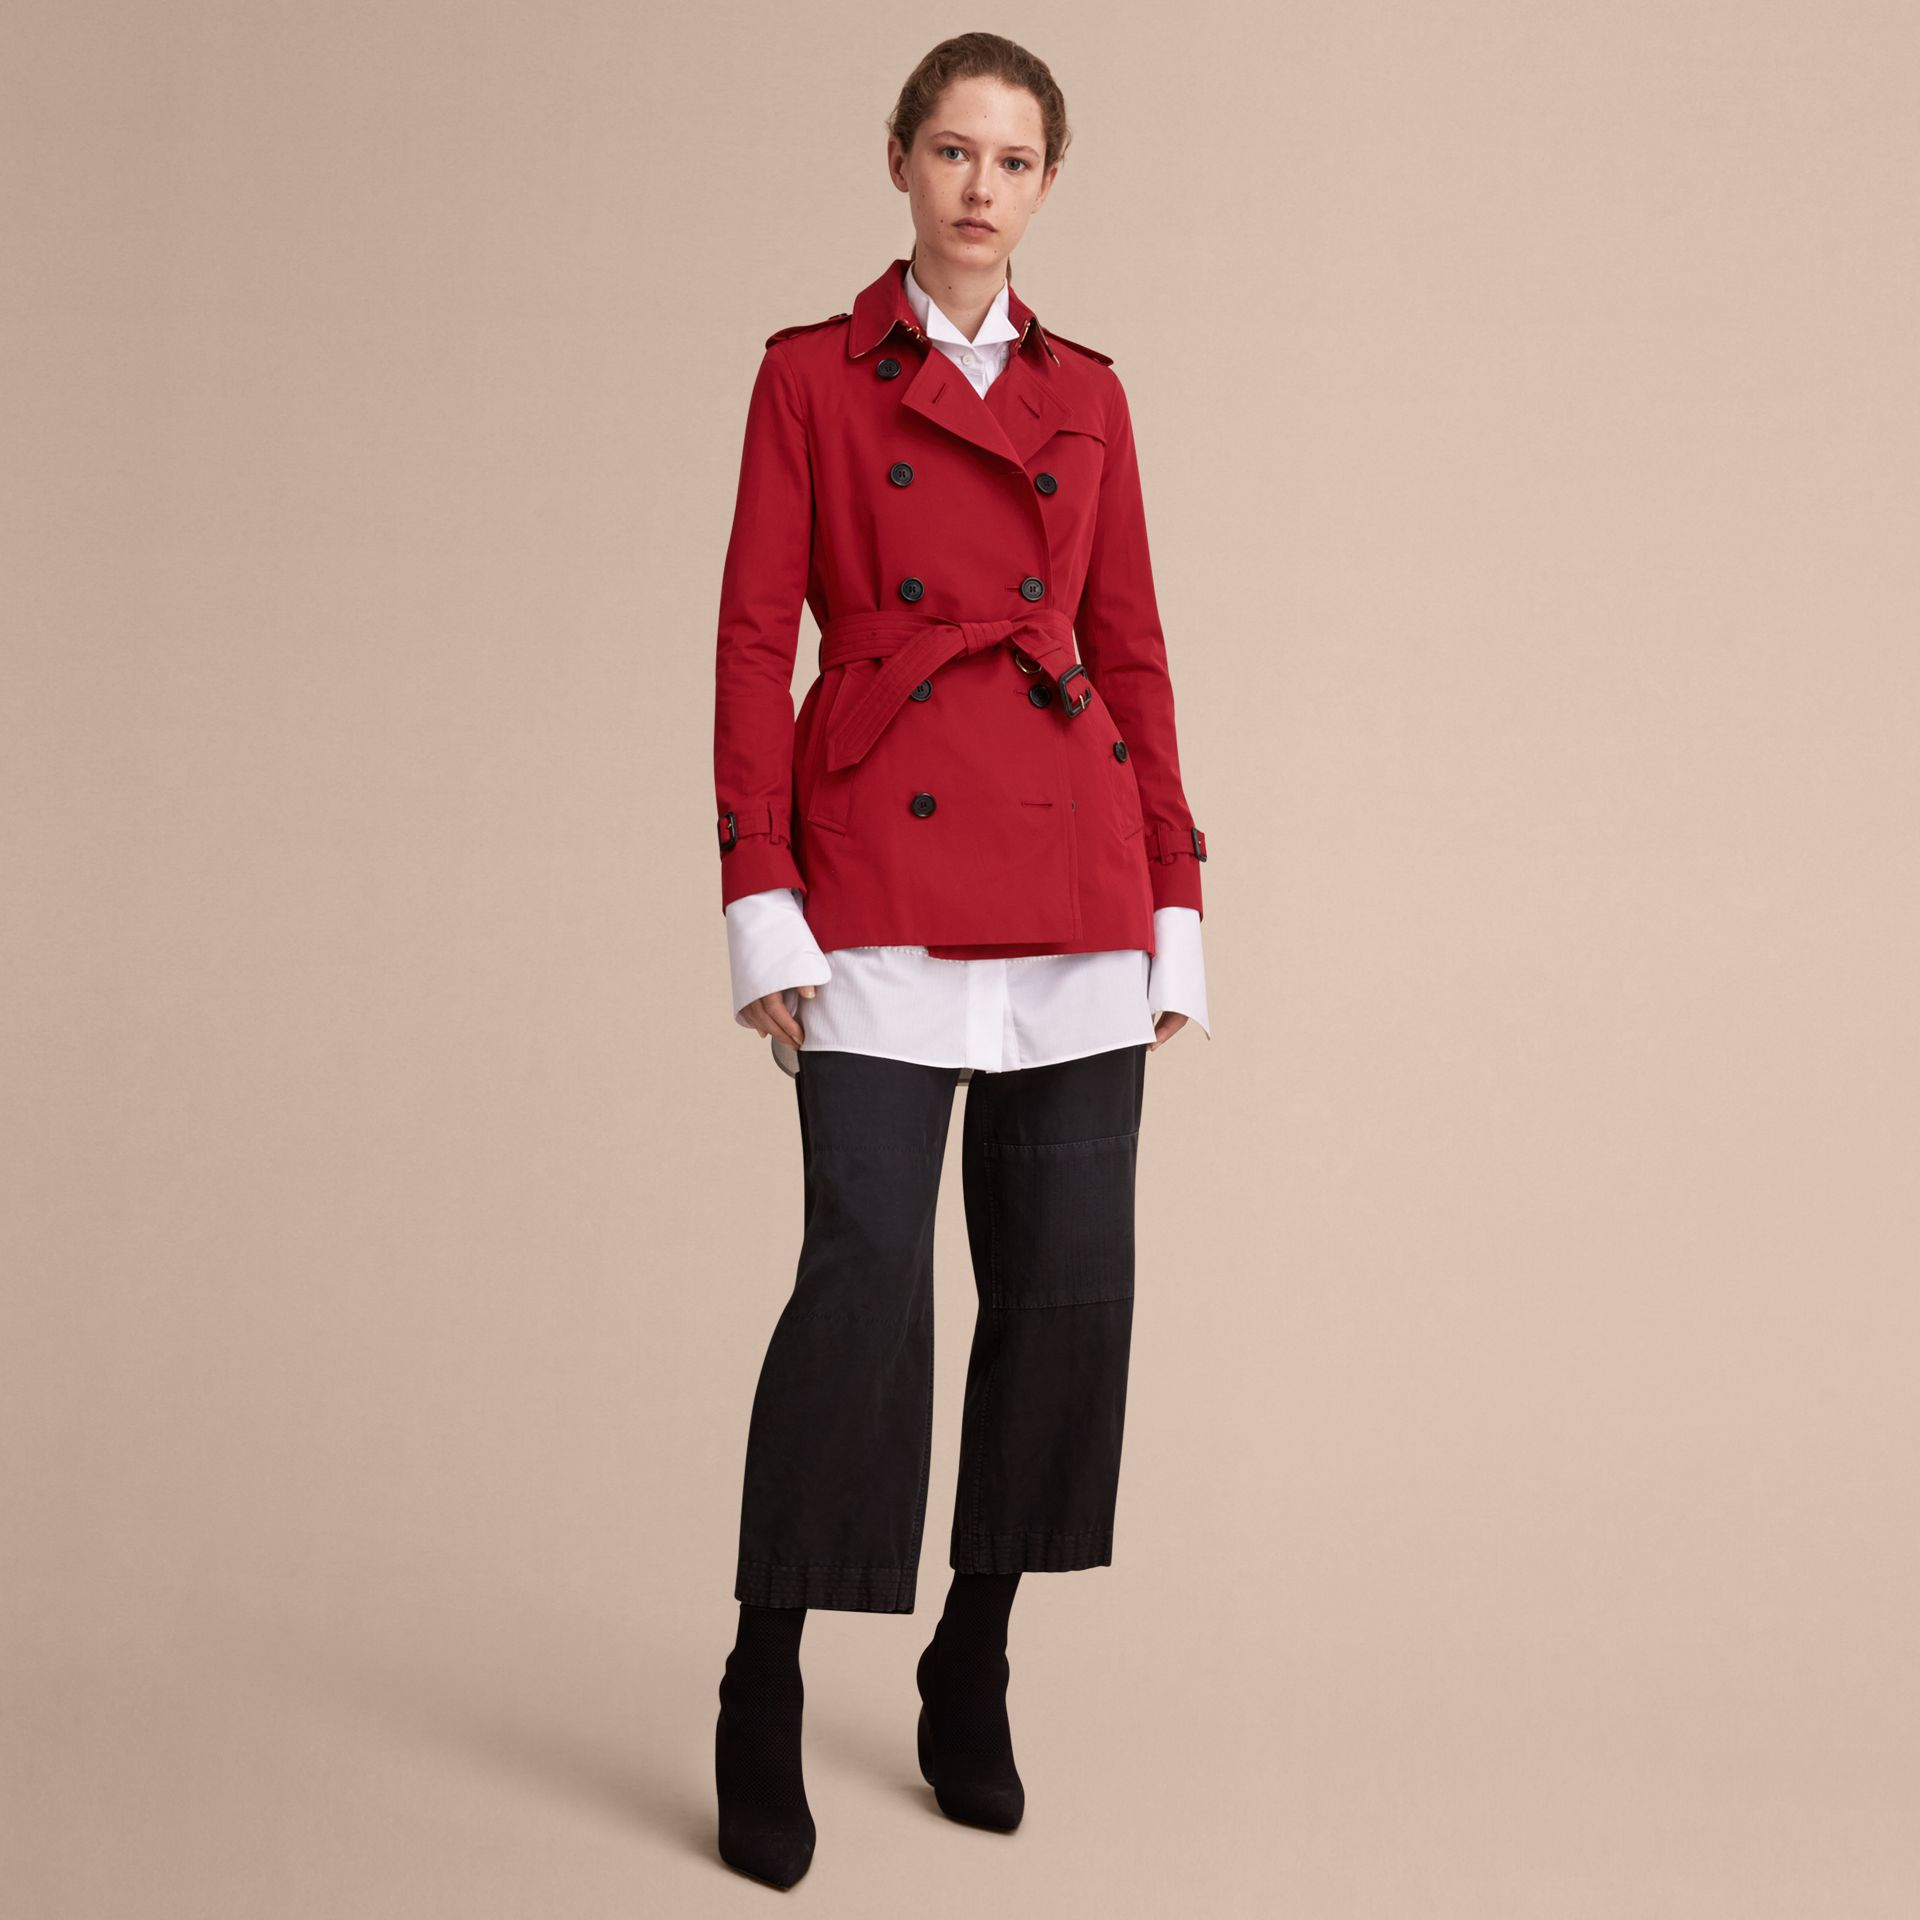 Parade red The Kensington - Trench coat Heritage curto Parade Red - galeria de imagens 8